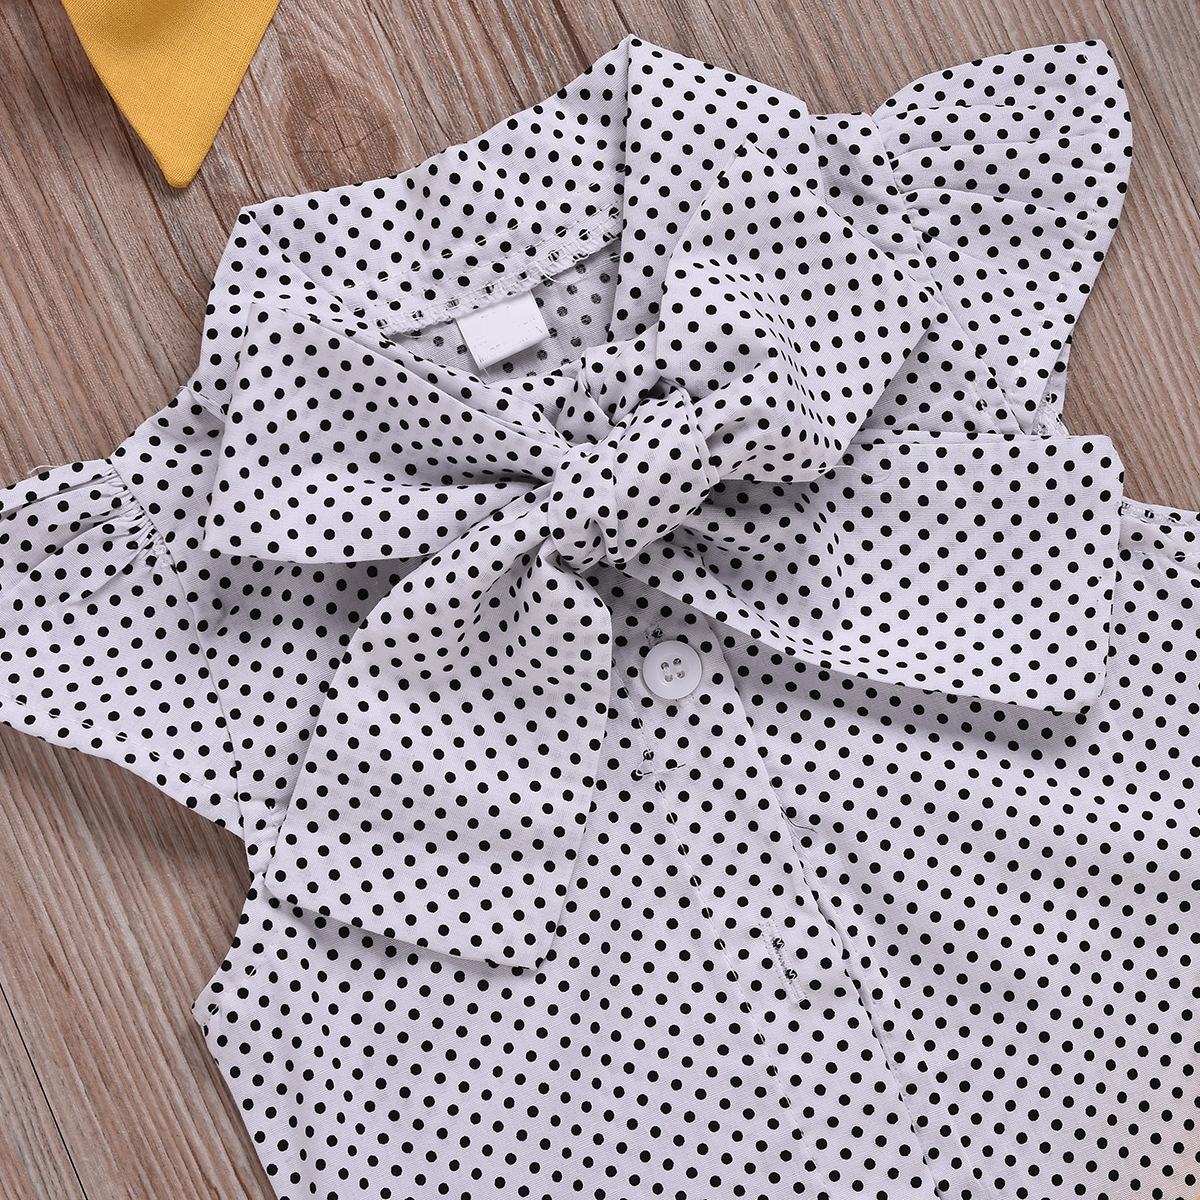 HTB112I3d.KF3KVjSZFEq6xExFXay - Humor Bear Baby Girl Clothes Hot Summer Children's Girls' Clothing Sets Kids Bay clothes Toddler Chiffon bowknot coat+Pants 1-4Y